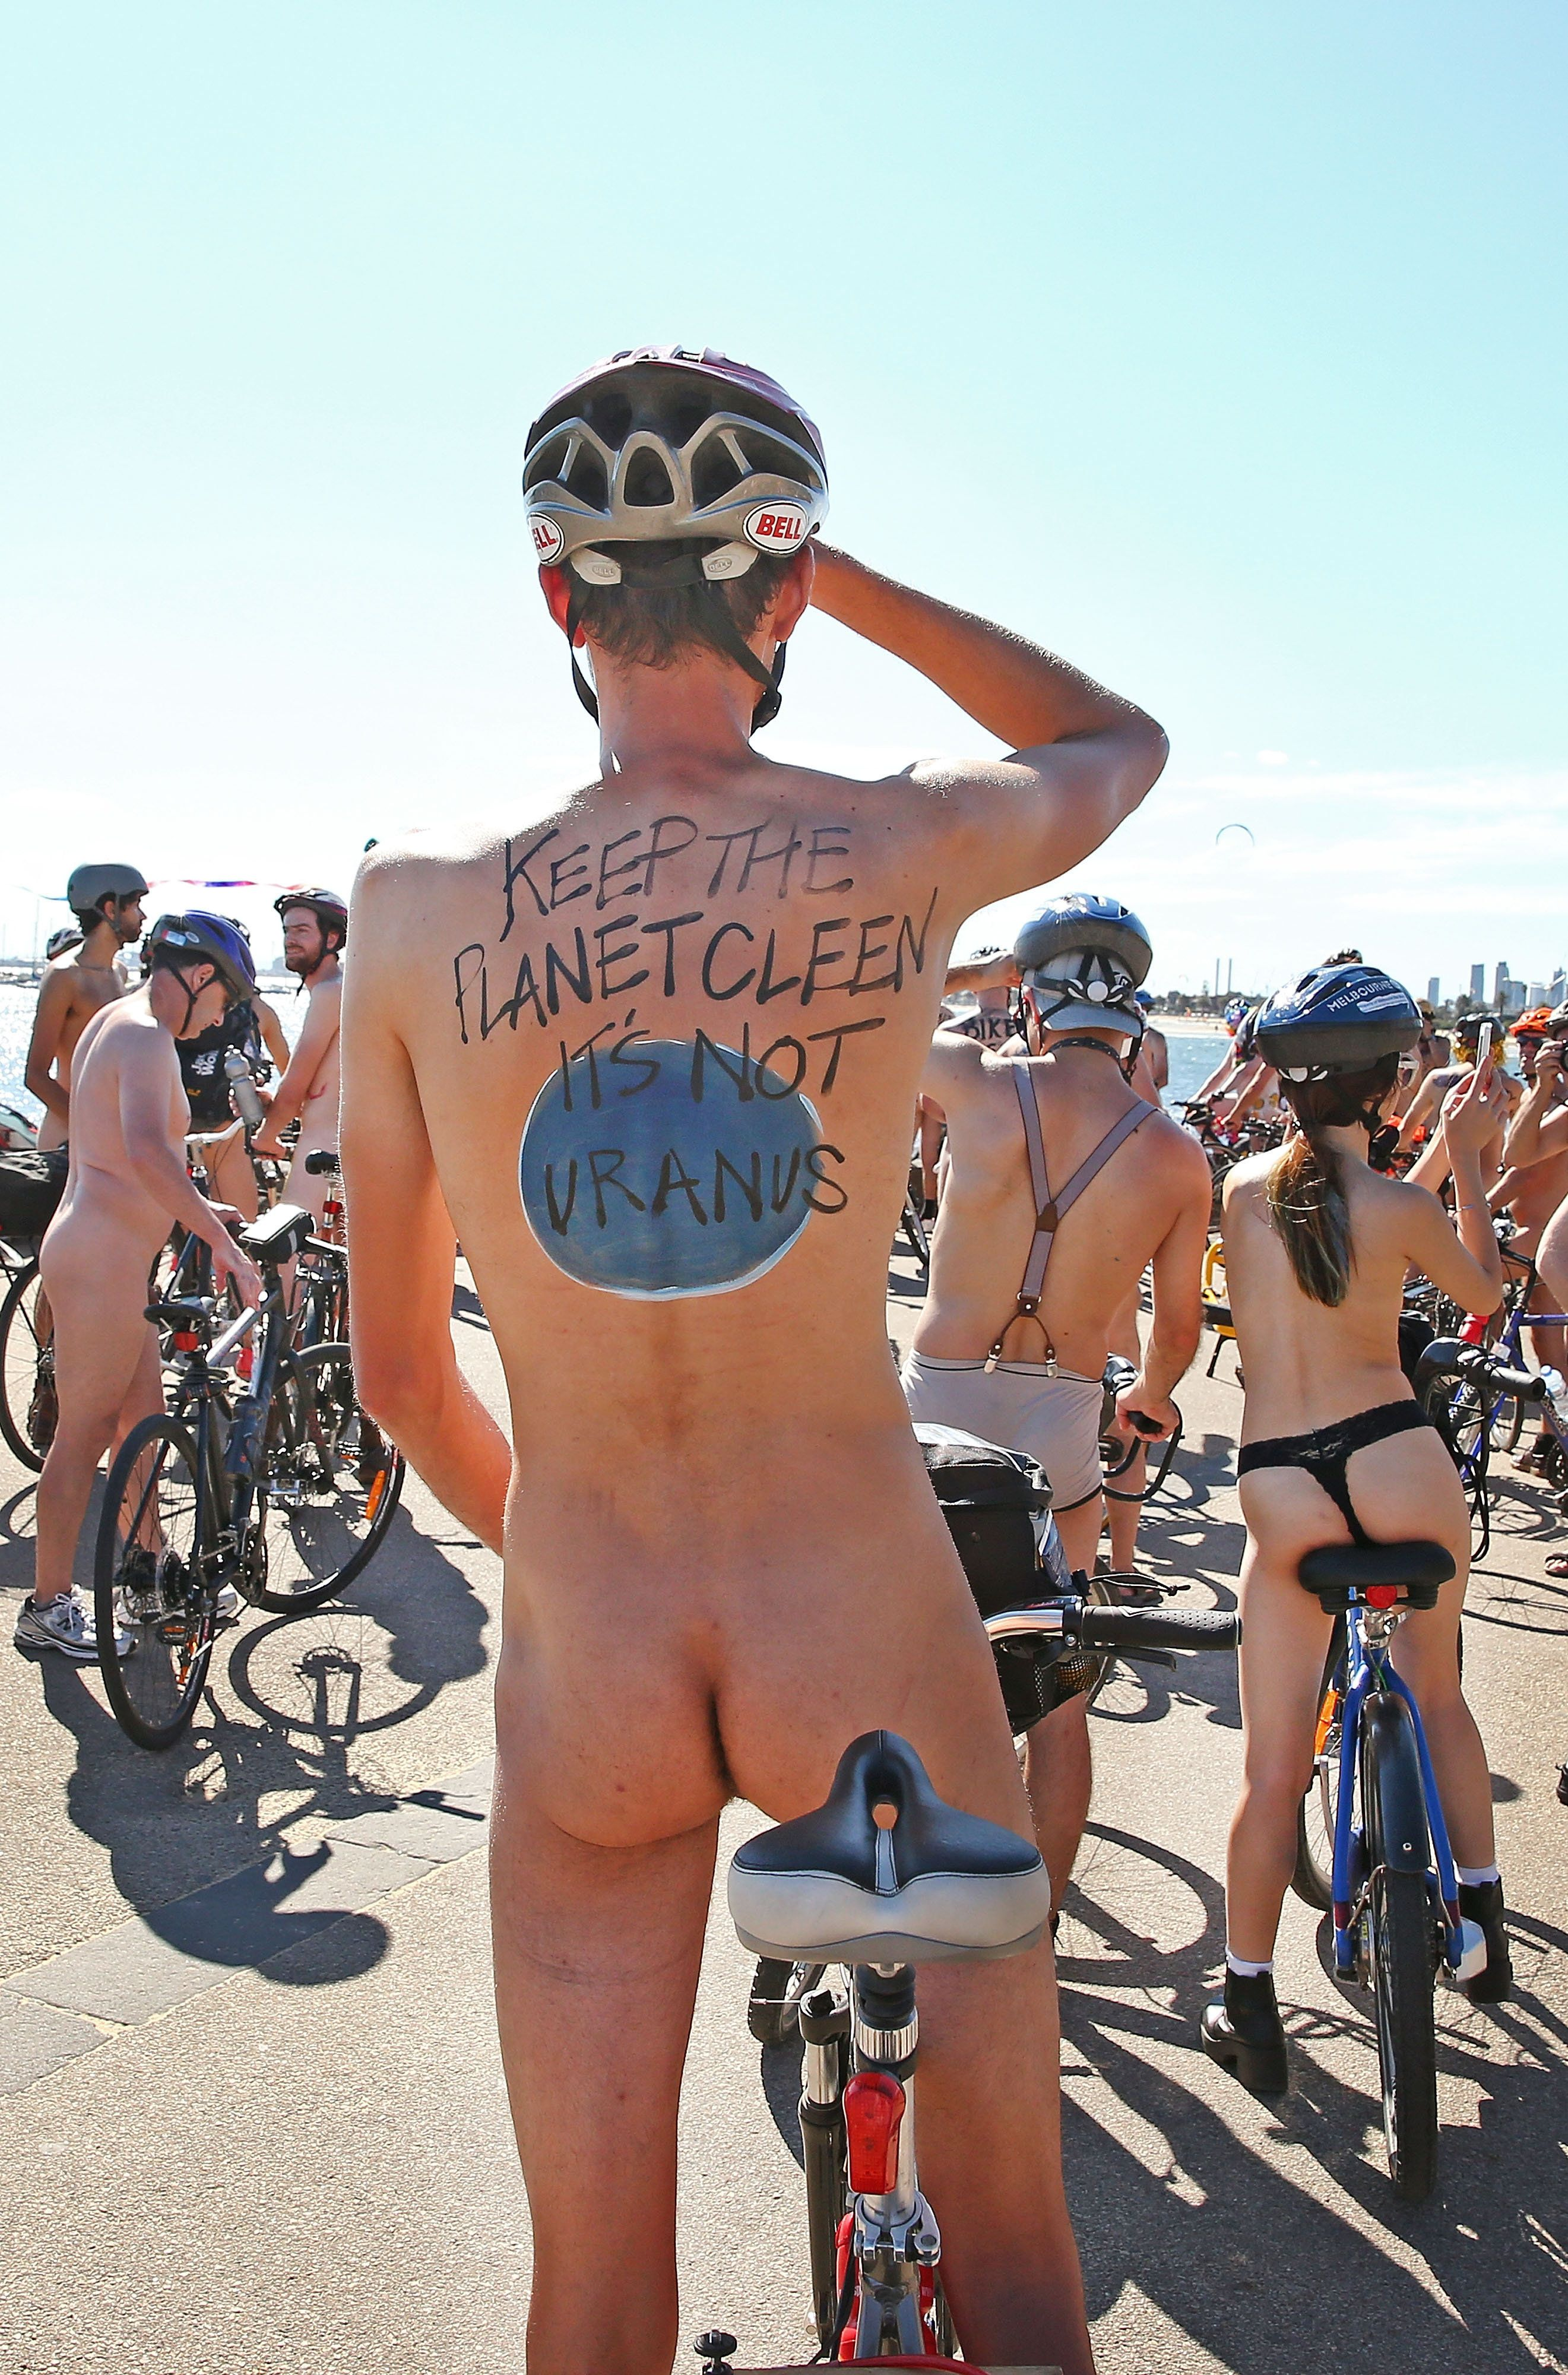 MELBOURNE, AUSTRALIA - FEBRUARY 28:  (EDITORS NOTE: Image contains nudity.) Naked bike riders cycle past St Kilda Beach during the 2016 World Naked Bike Ride on February 28, 2016 in Melbourne, Australia.  The World Naked Bike Ride is an annual international clothing-optional bike ride in which participants ride together to peacefully protest issues including body image, cyclists safety and alternative lifestyles.  (Photo by Scott Barbour/Getty Images)